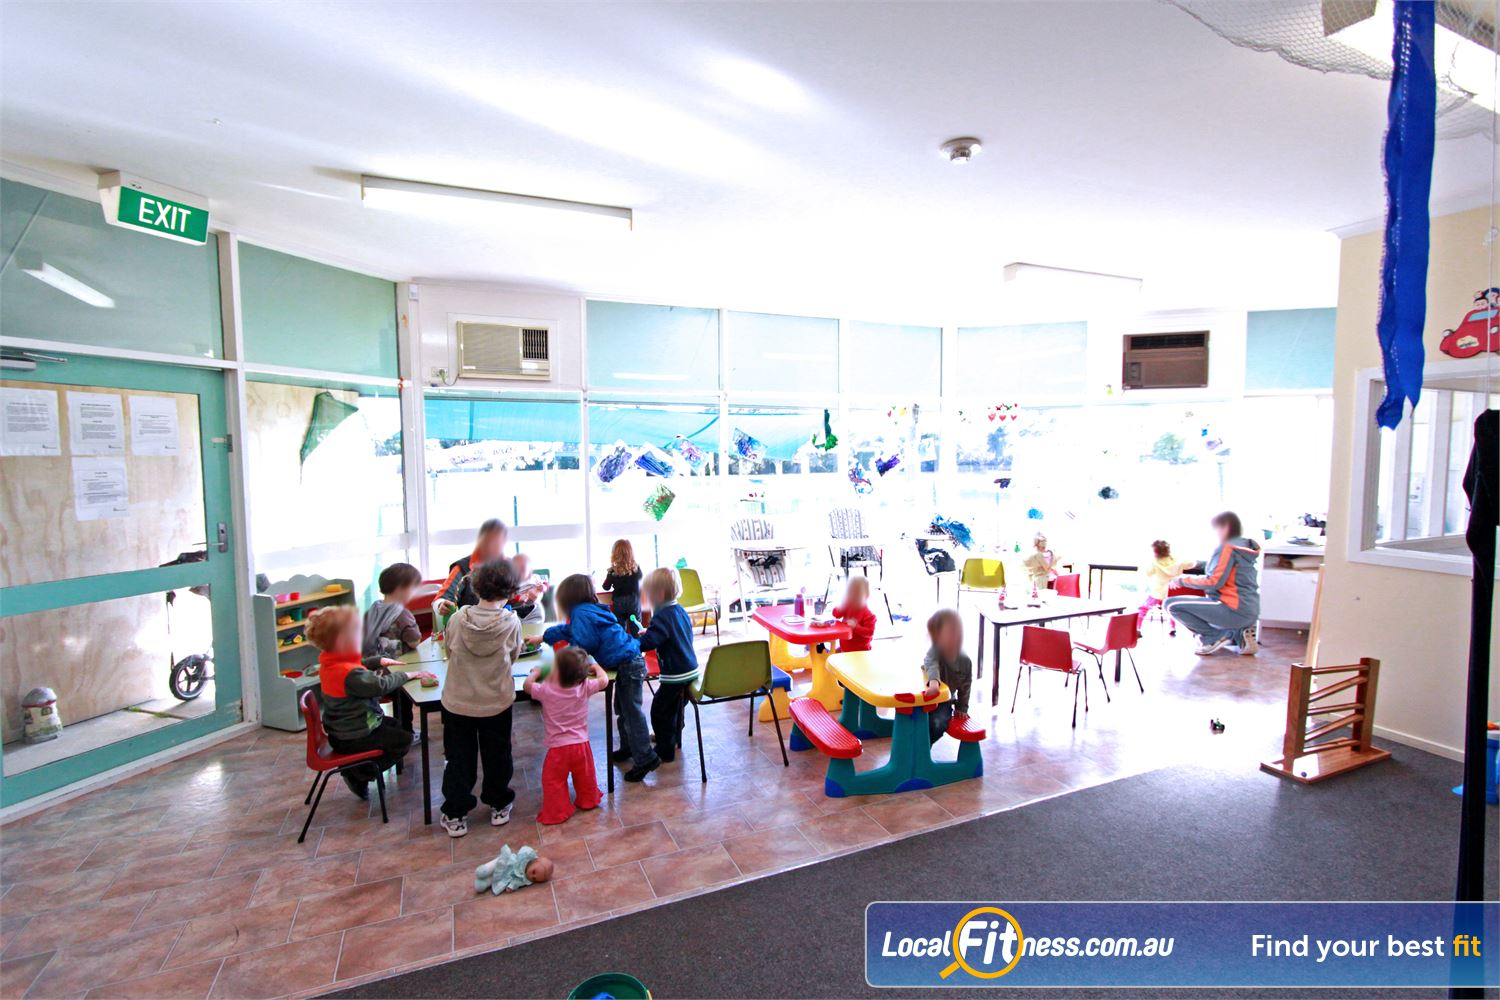 East Keilor Leisure Centre Keilor East While you enjoy our fitness facilities, professional staff will take care of your kids.